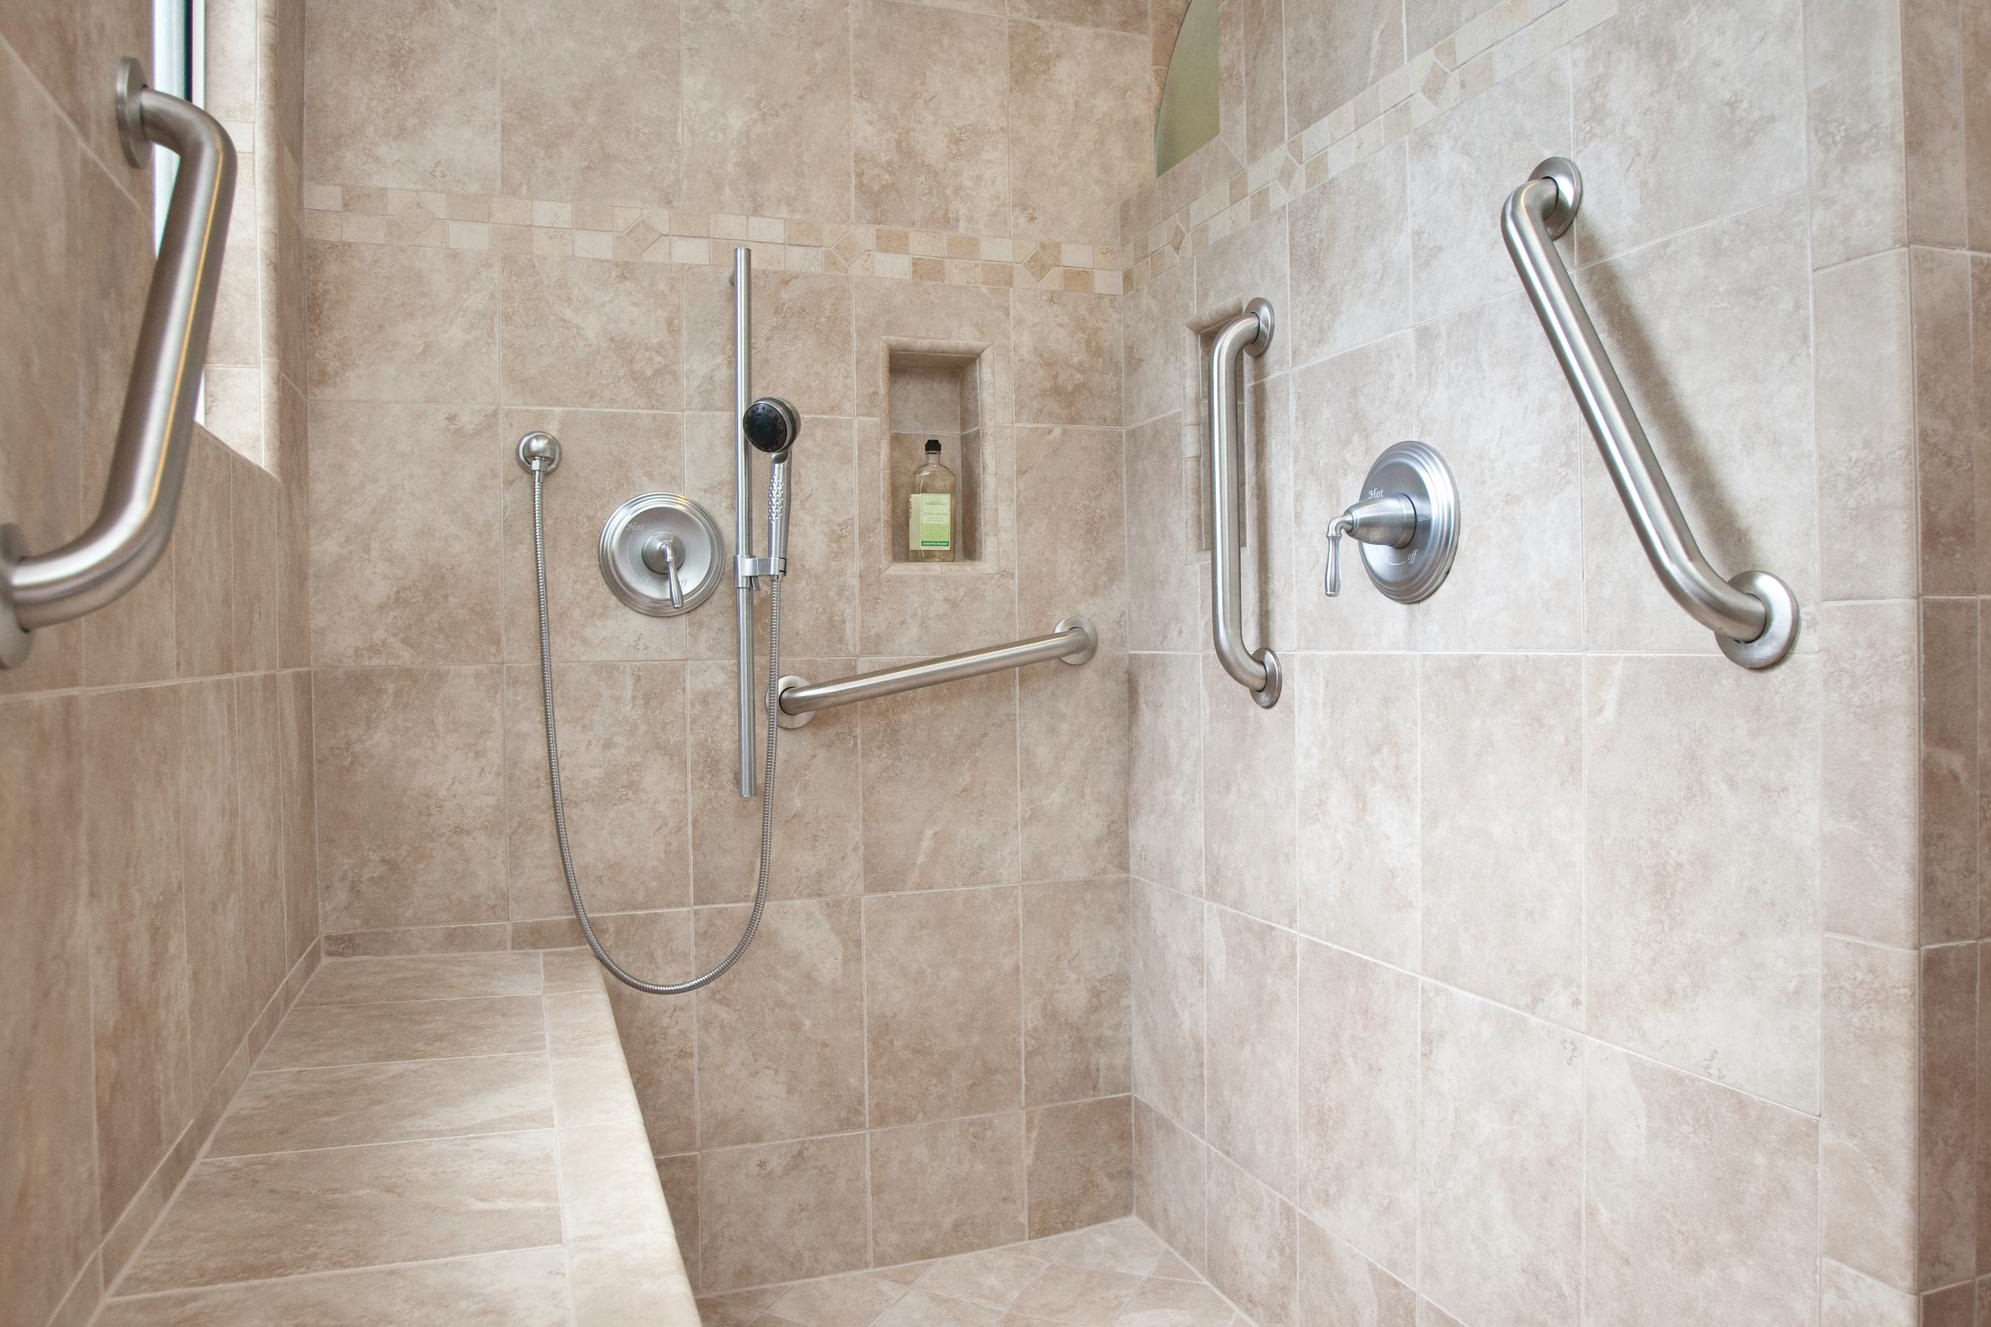 AllAccess Pass Showers Remodeling Bath Design Kitchen - Cost effective bathroom remodel for bathroom decor ideas